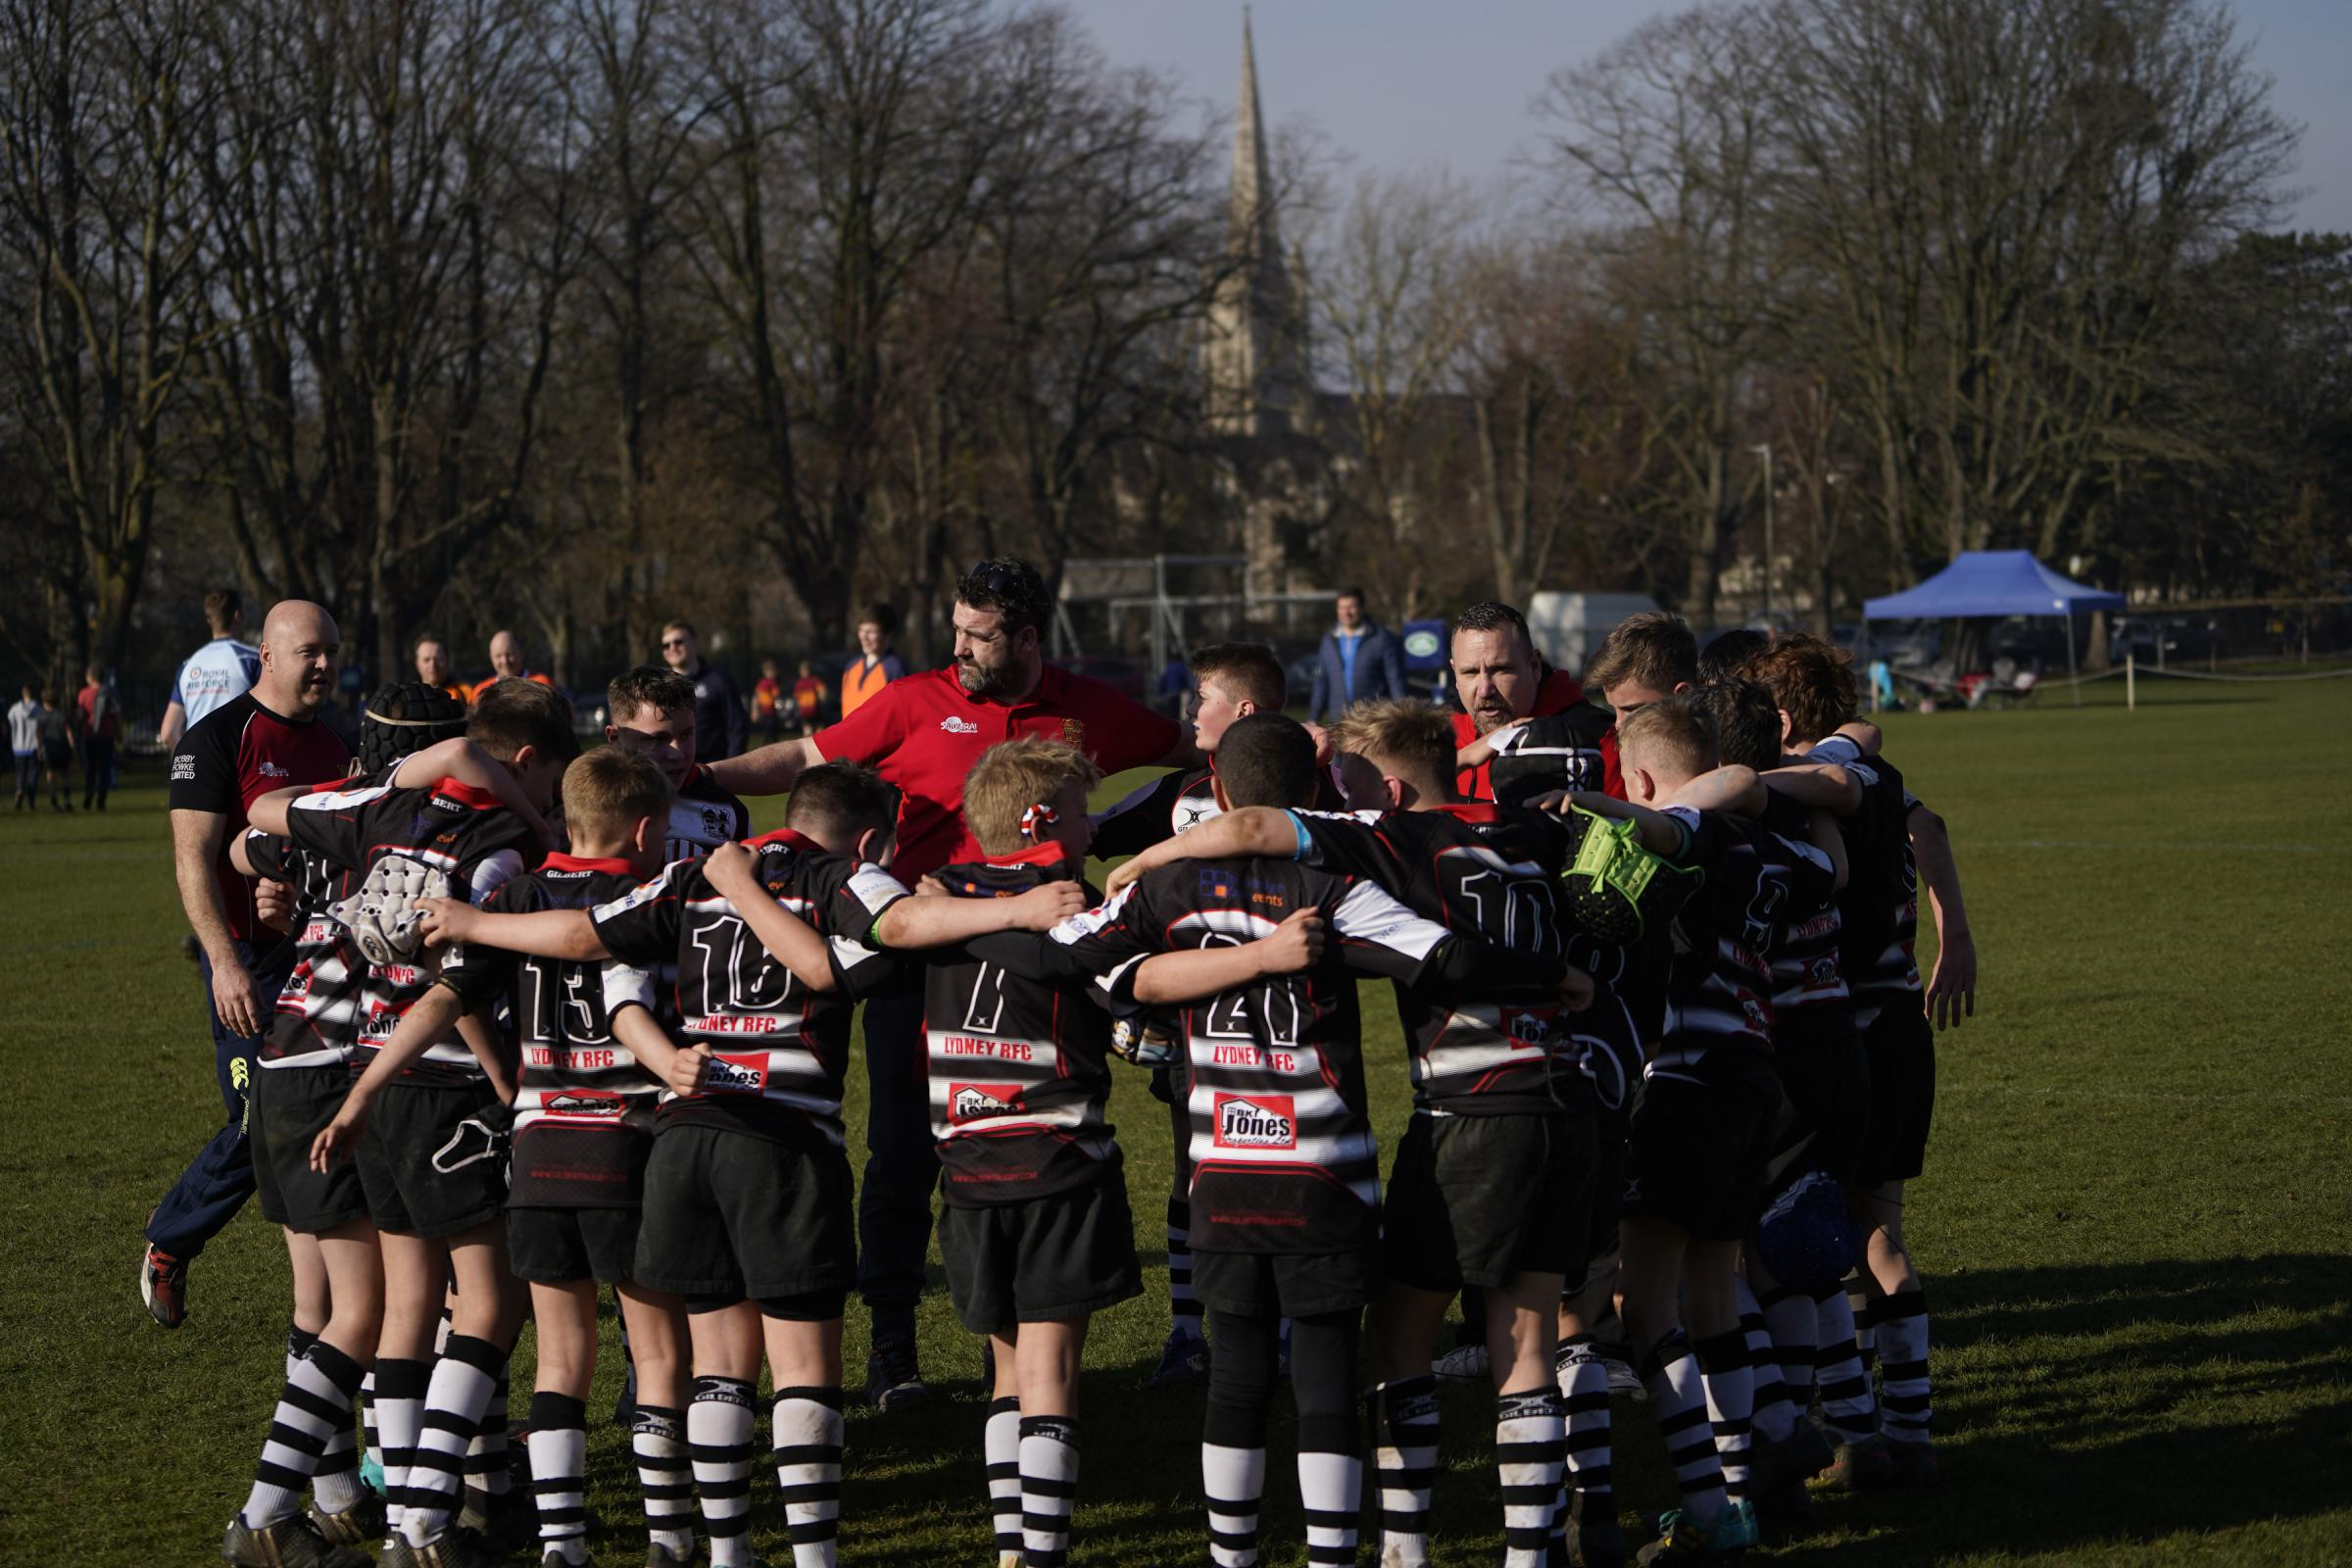 Lydney will join a whole hosts of teams at Twickenham on Premiership Final day